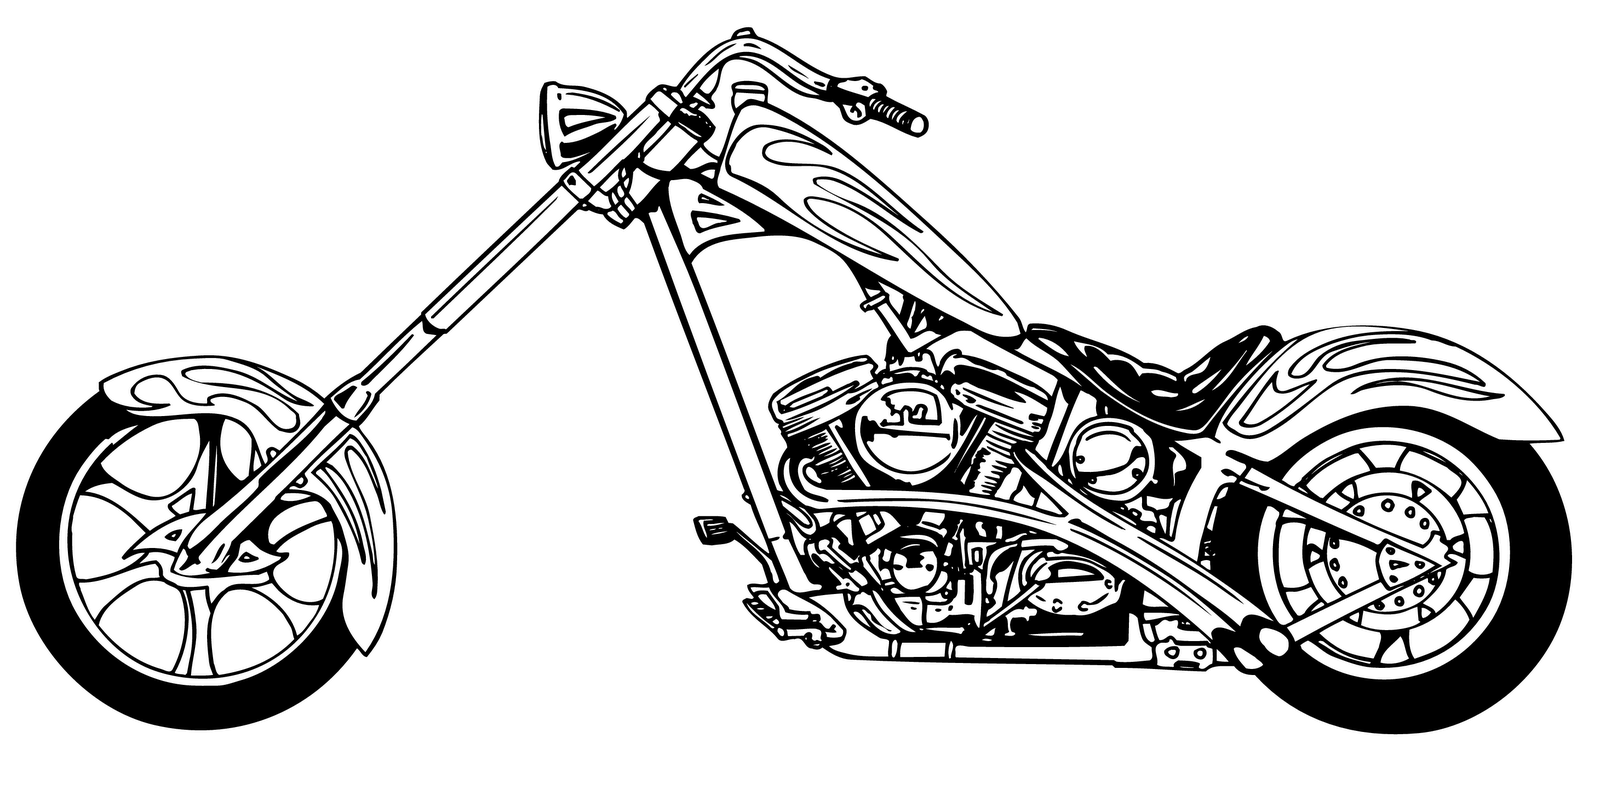 Free motorcycle clipart motorcycle clip art pictures.